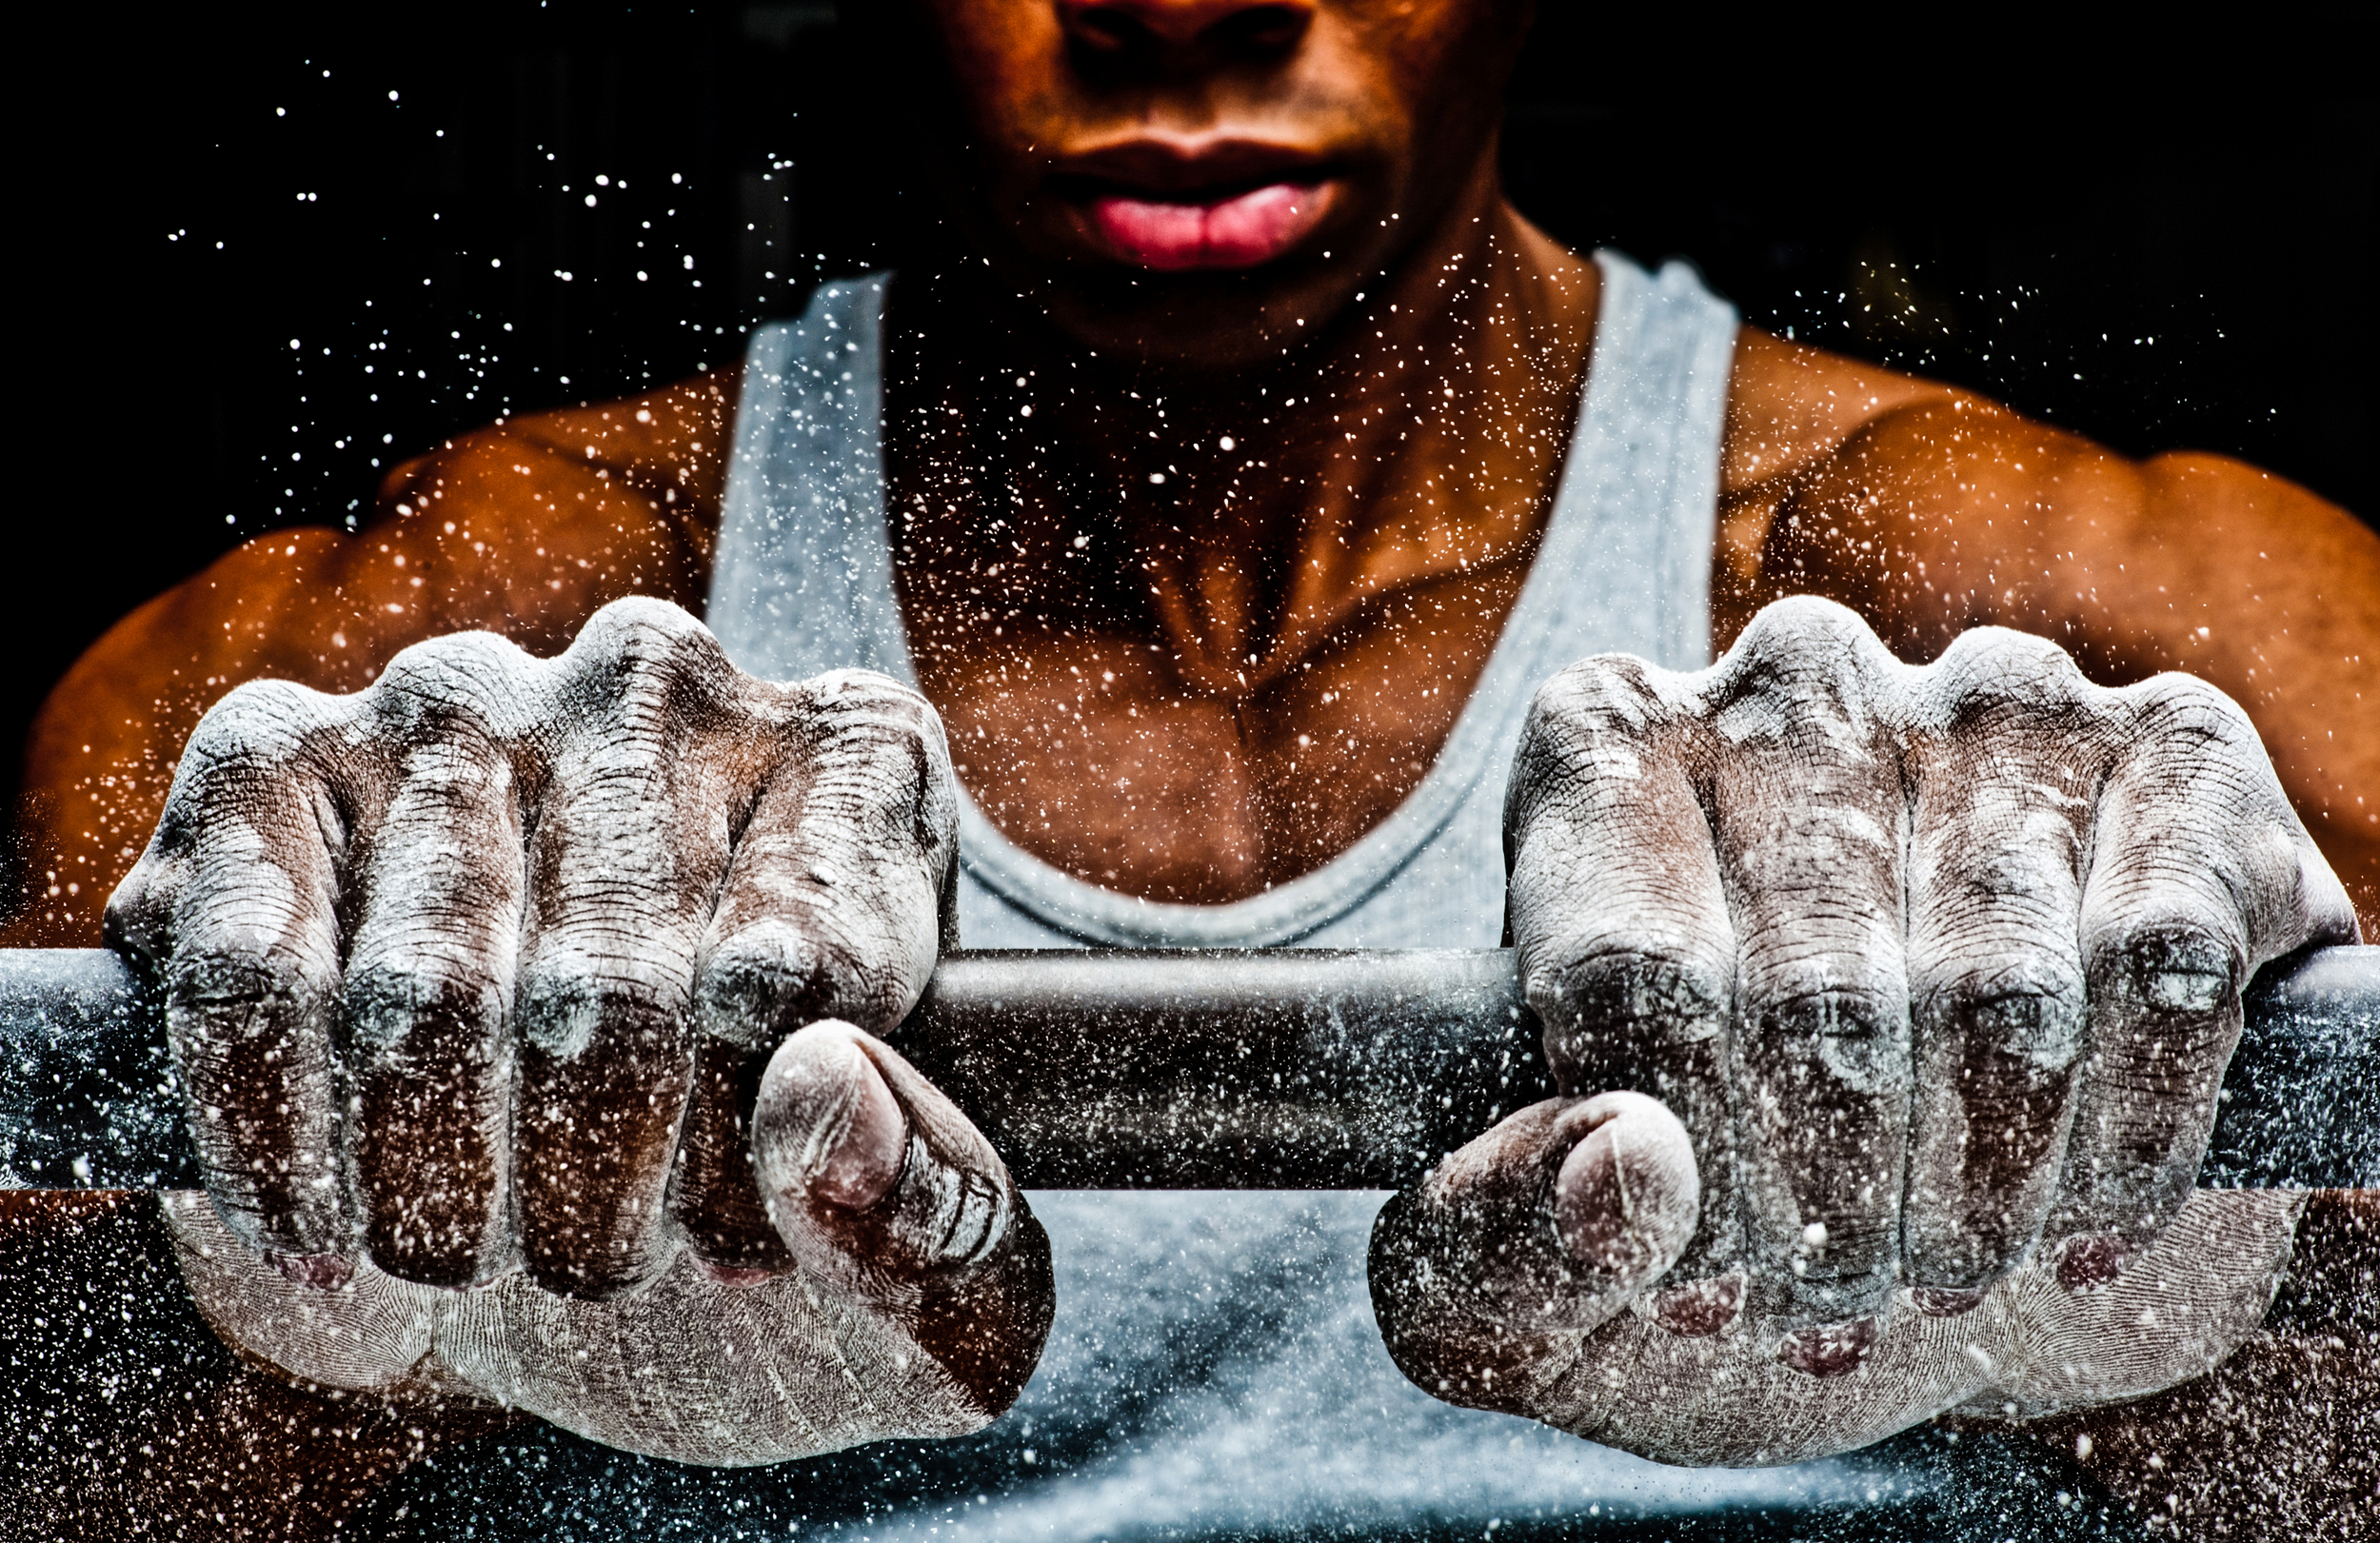 Chalk covers the hands of a body builder © Rob Hammer